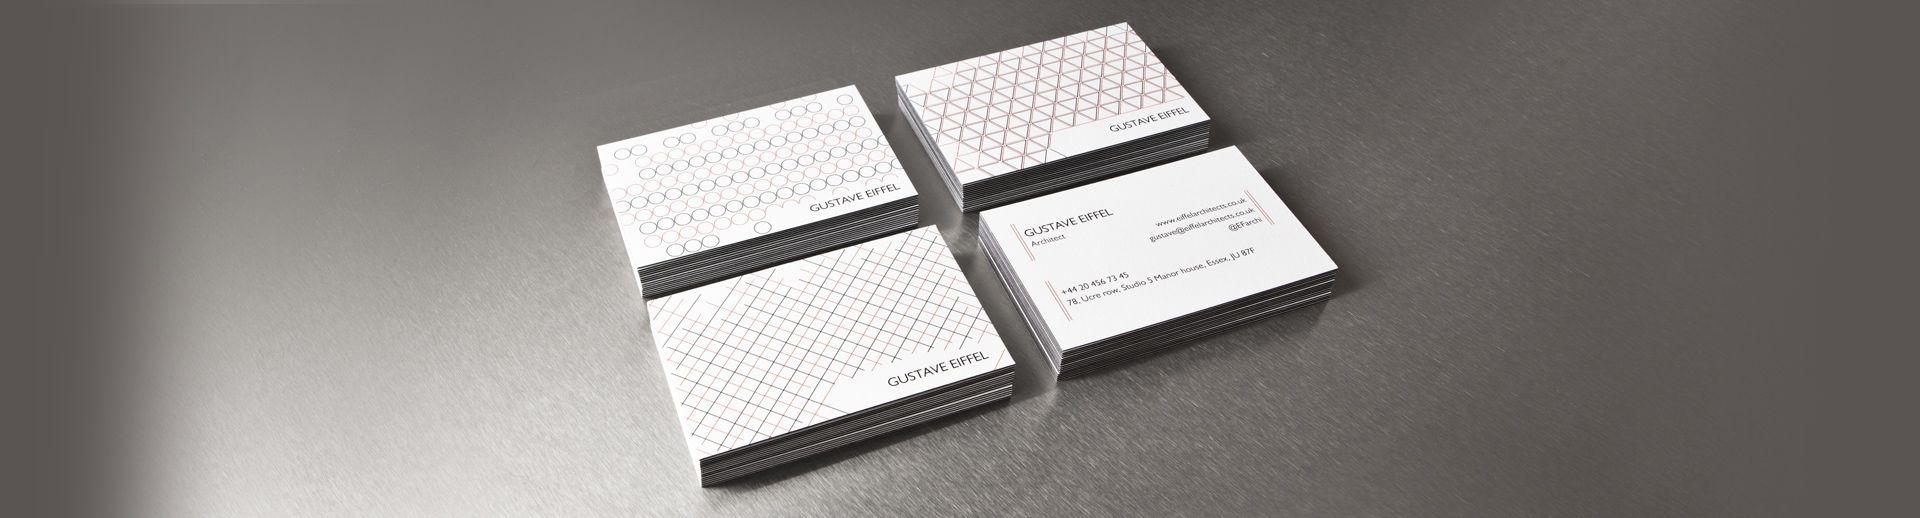 Luxury Business Cards Extra Thick Premium Business Cards Luxe Business Cards Business Card Mock Up Thick Business Cards